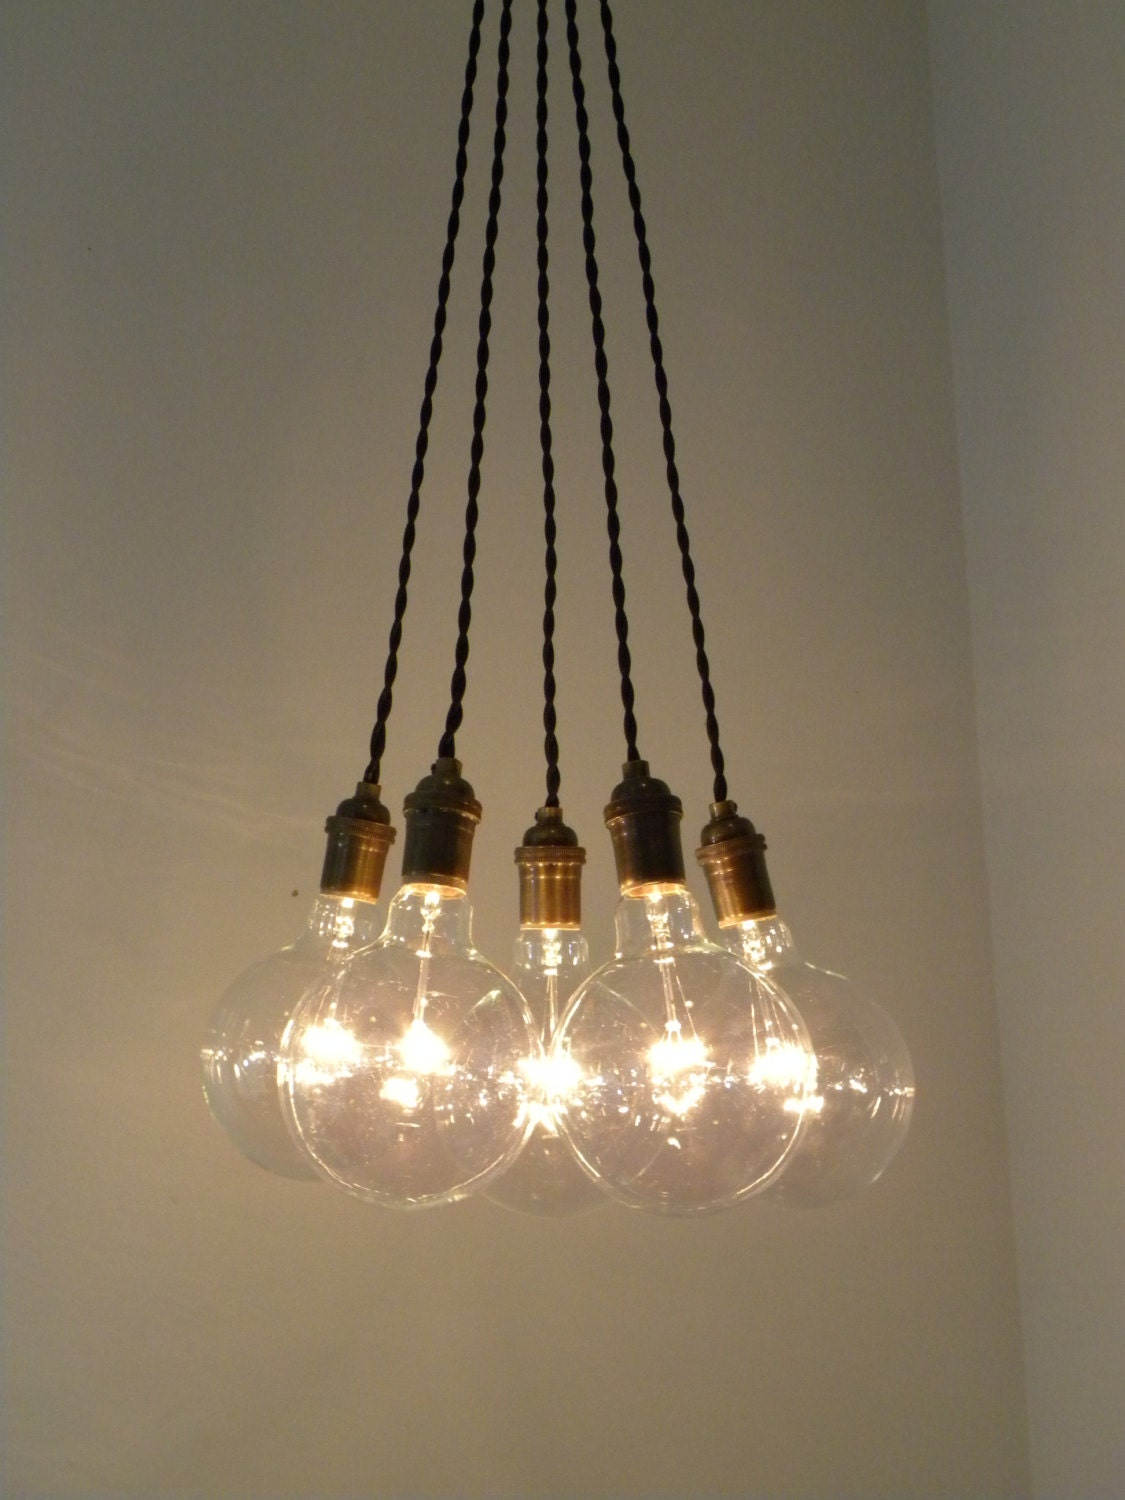 5 Bulb Antique Tiwsted Cloth Cord Chandelier Pendant Lighting